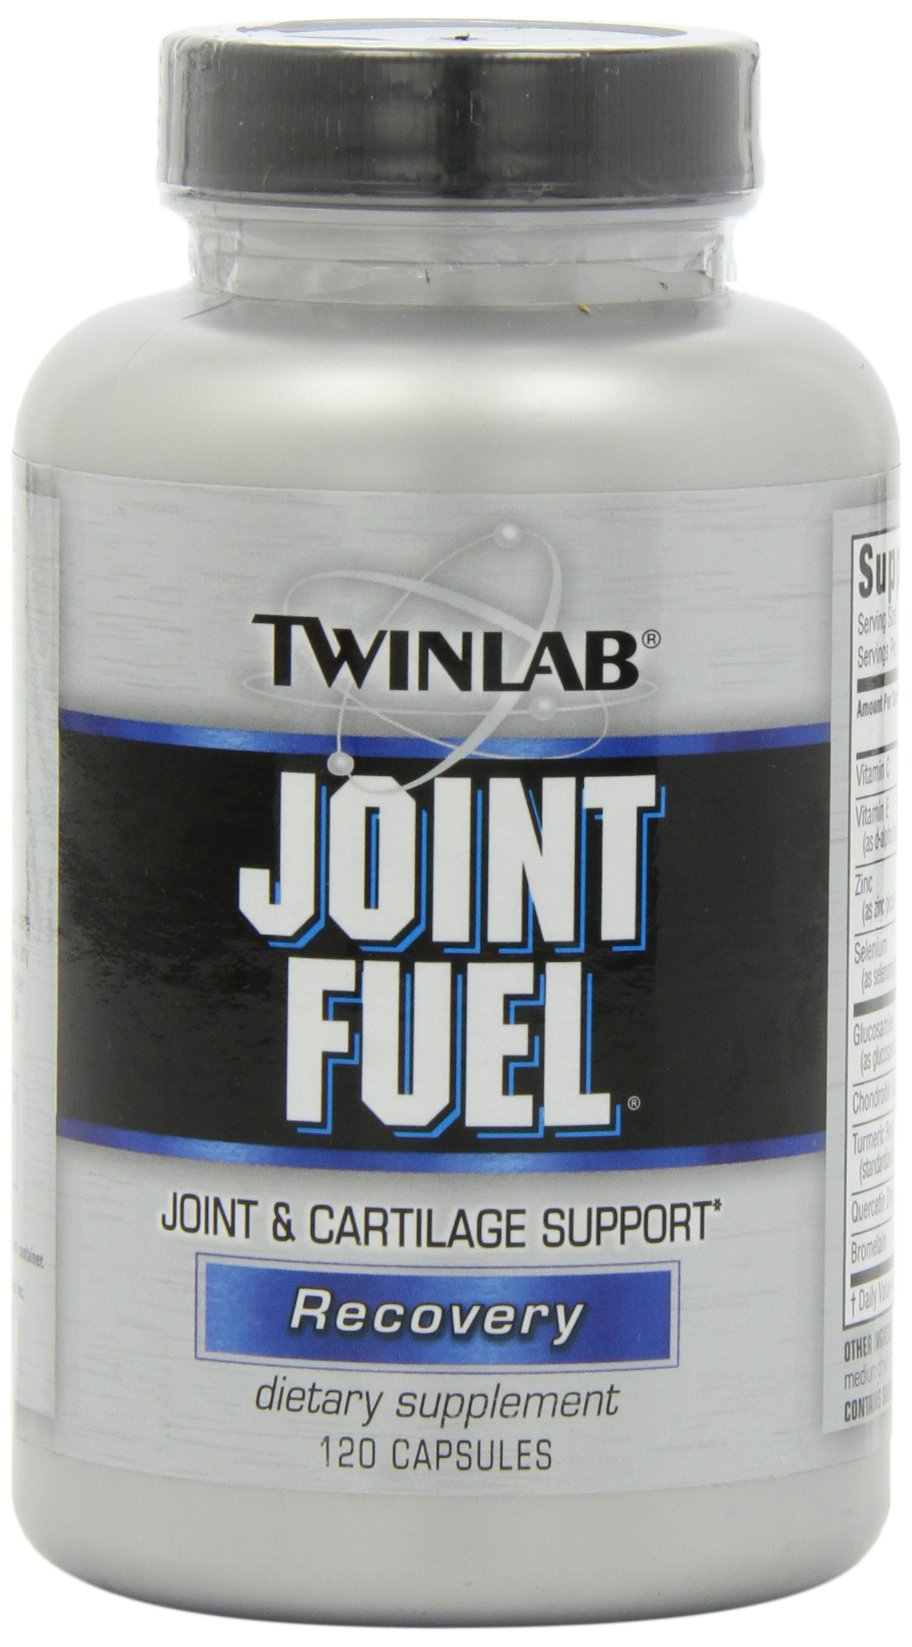 Twinlab Joint Fuel, Recovery, 120 Capsules